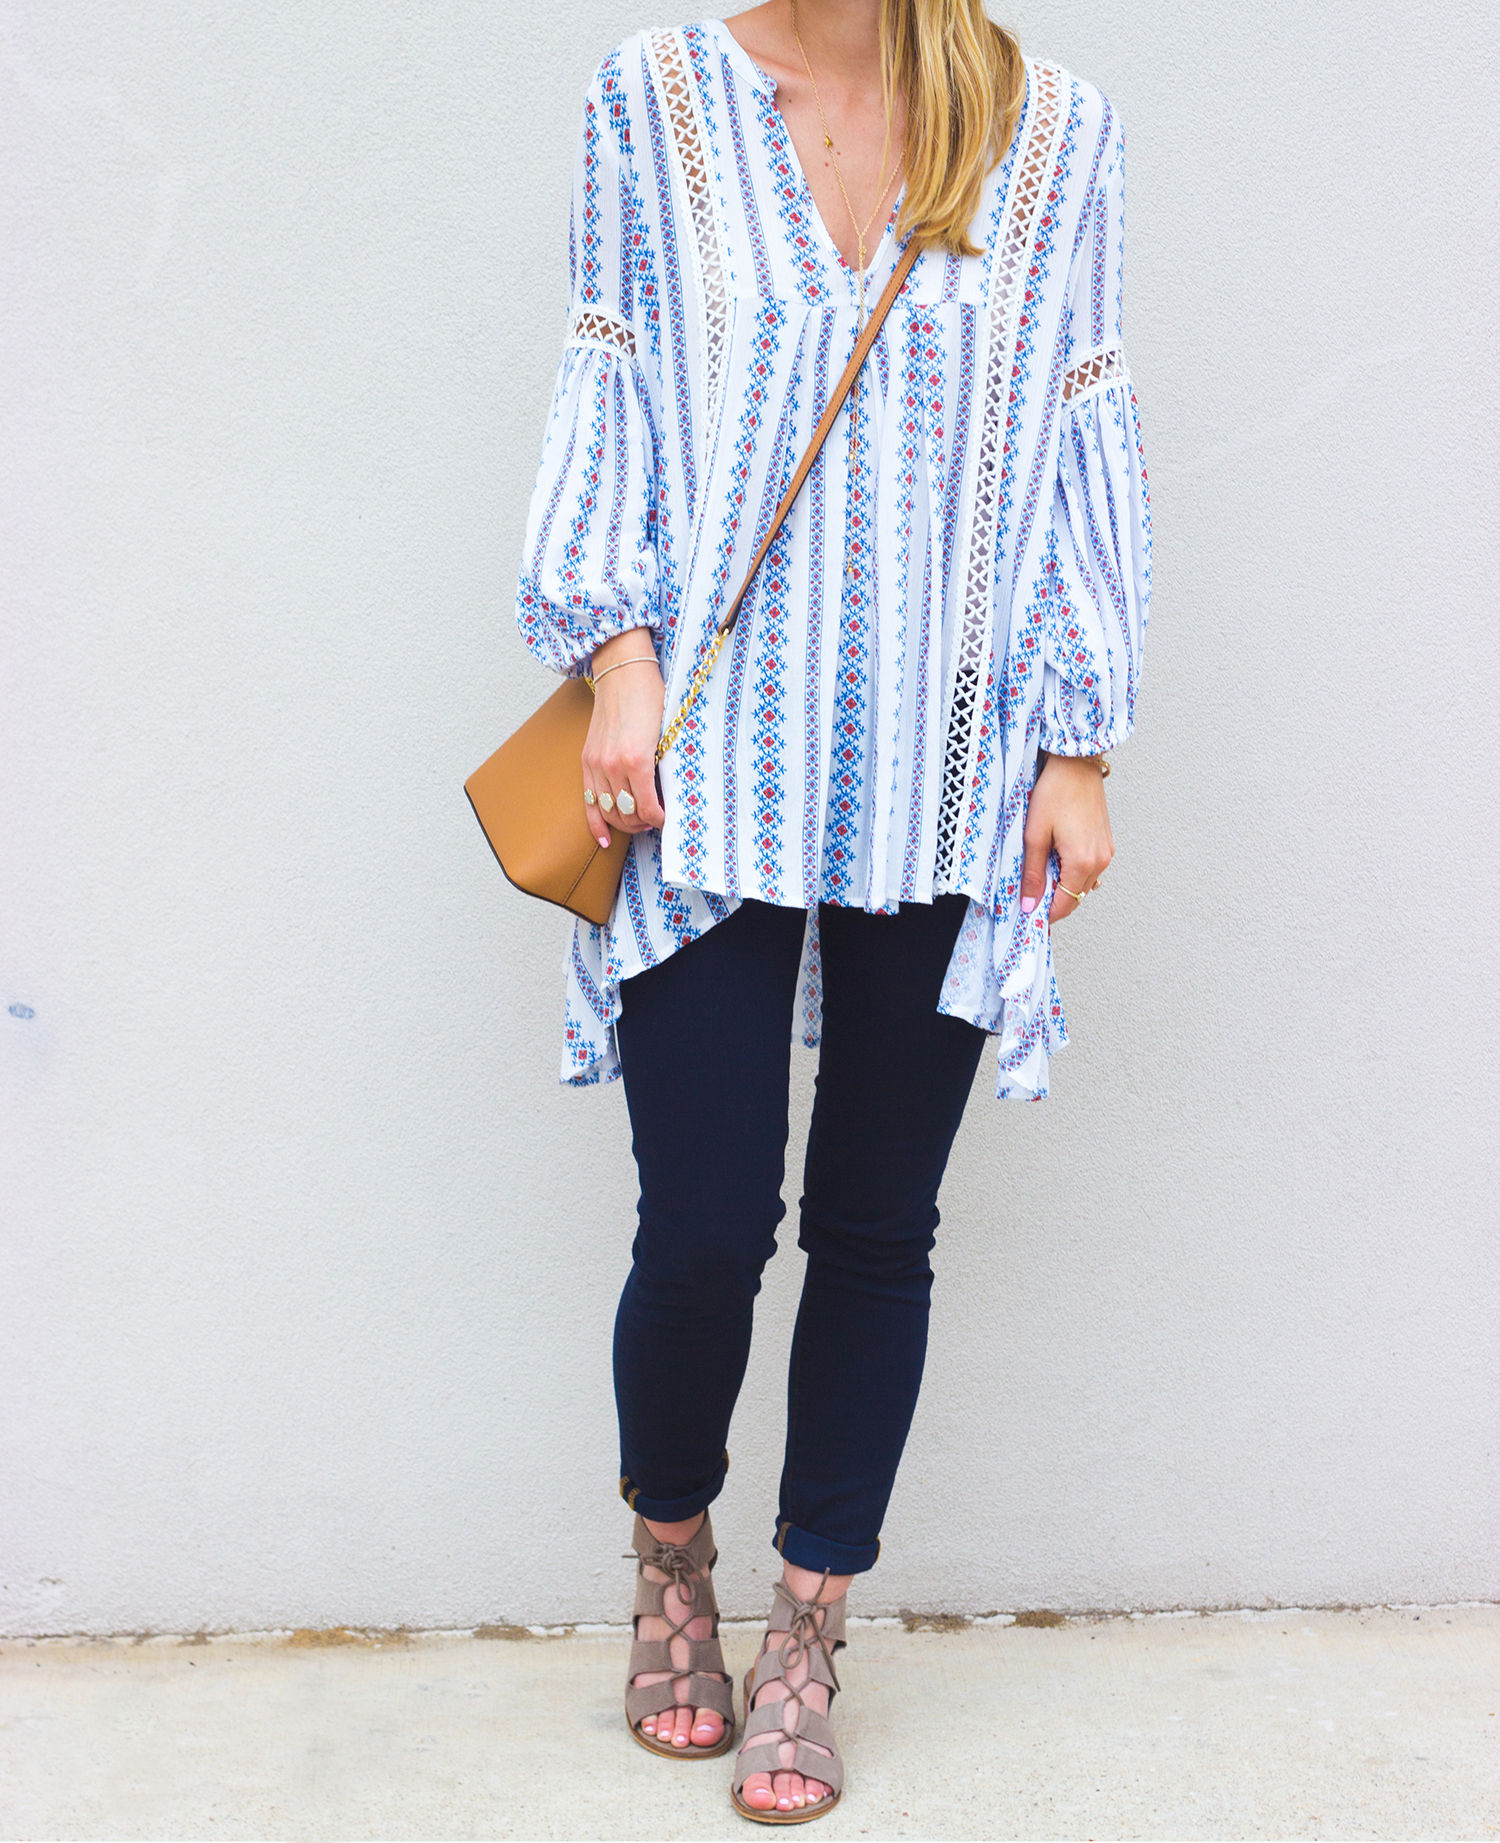 livvyland-blog-olivia-watson-boho-printed-oversize-tunic-chicwish-rebecca-minkoff-dark-wash-skinny-jeans-olivia-watson-austin-texas-fashion-blogger-steve-madden-roslyn-lace-up-sandals-6